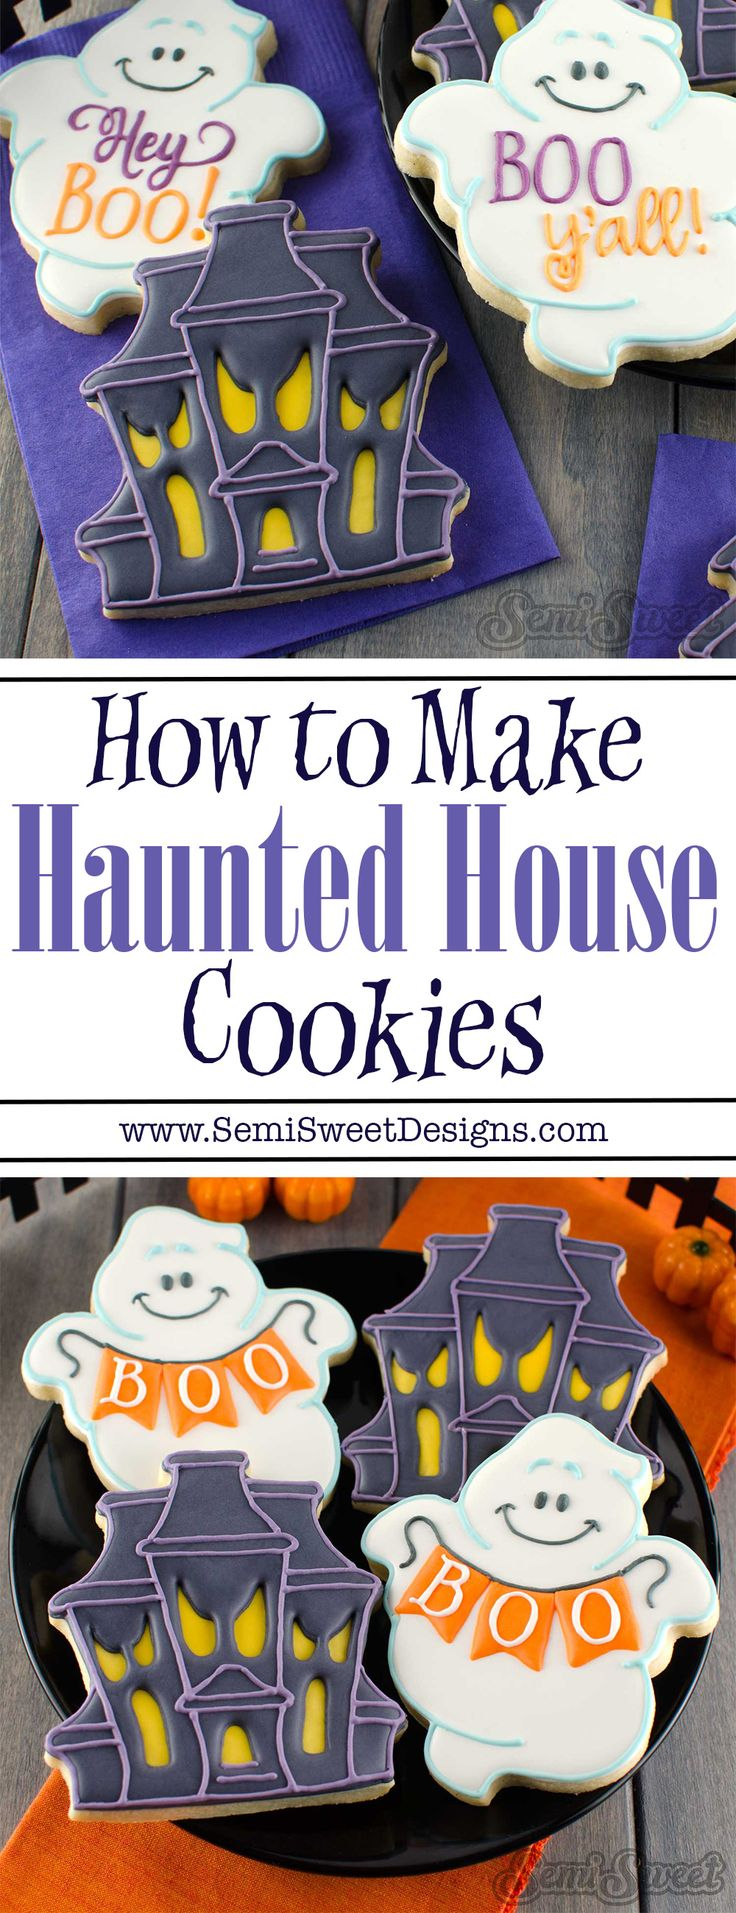 How to Make Haunted House Cookies by www.SemiSweetDesigns.com